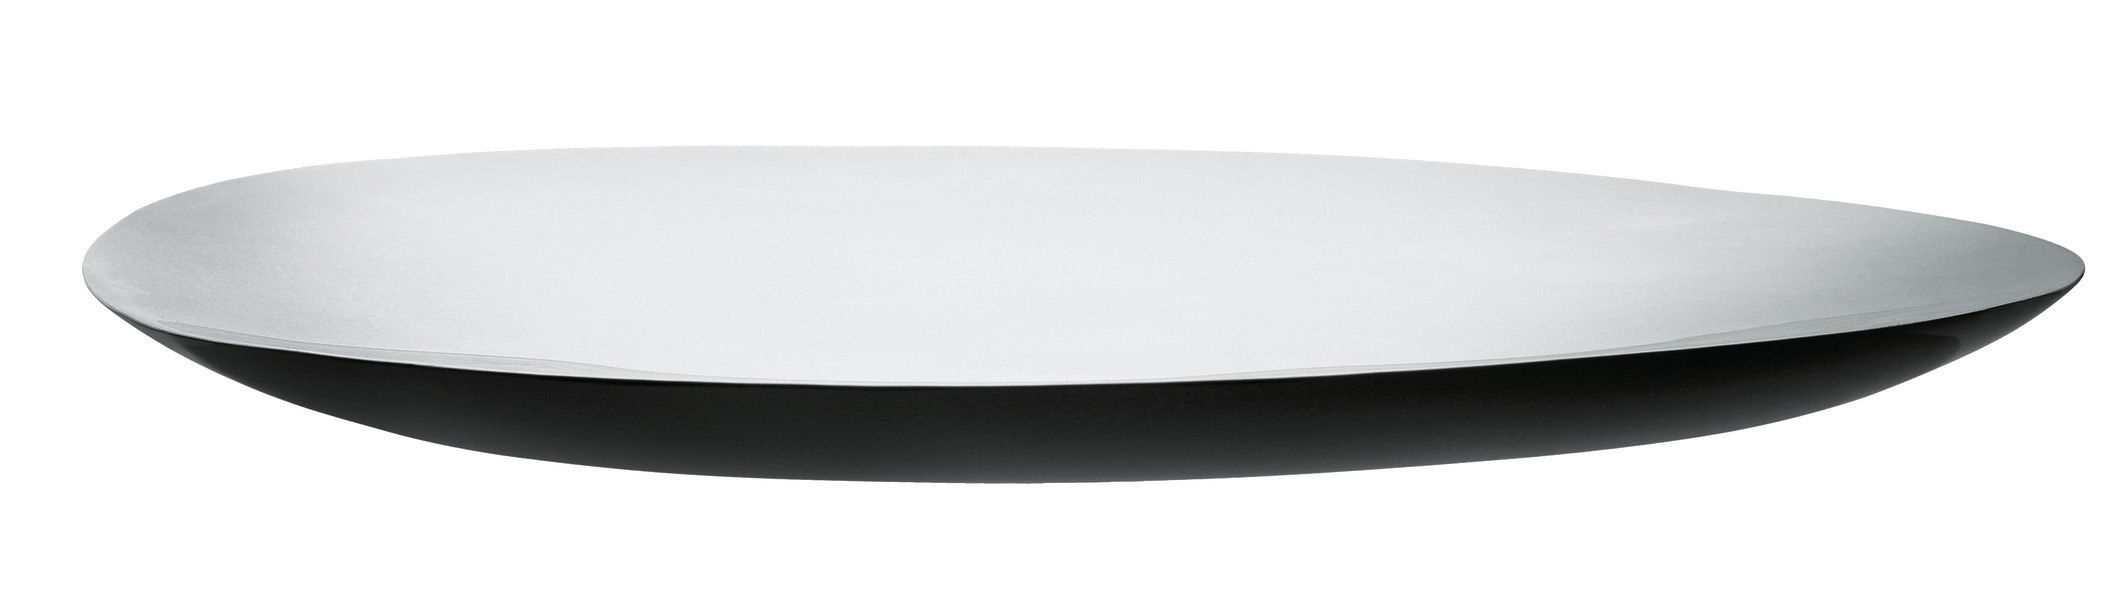 Tableware - Trays - Disco Volante Tray by Alessi - Steel mirror polished - Stainless steel